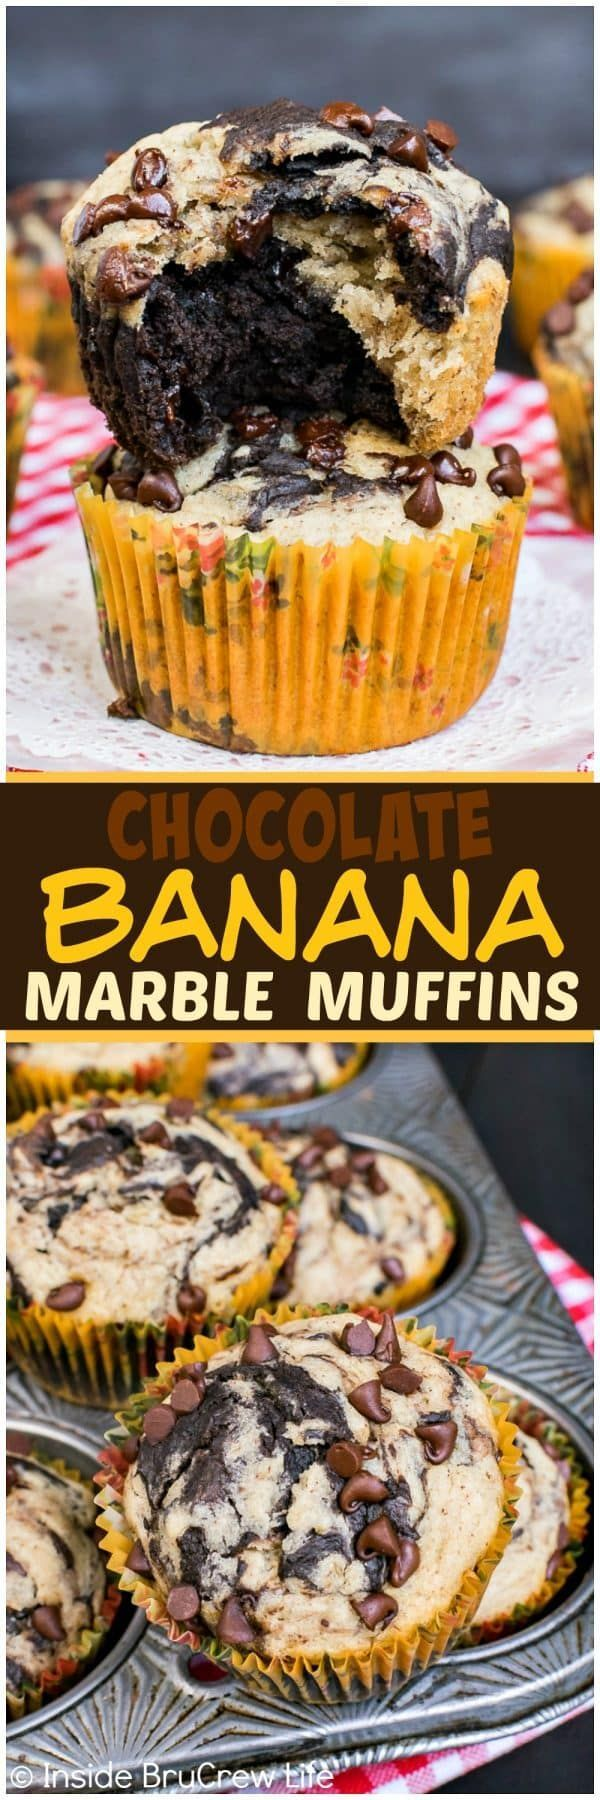 Chocolate Banana Marble Muffins - sweet swirls of chocolate and banana make these the best breakfast muffins!  Great healthy recipe for busy mornings!